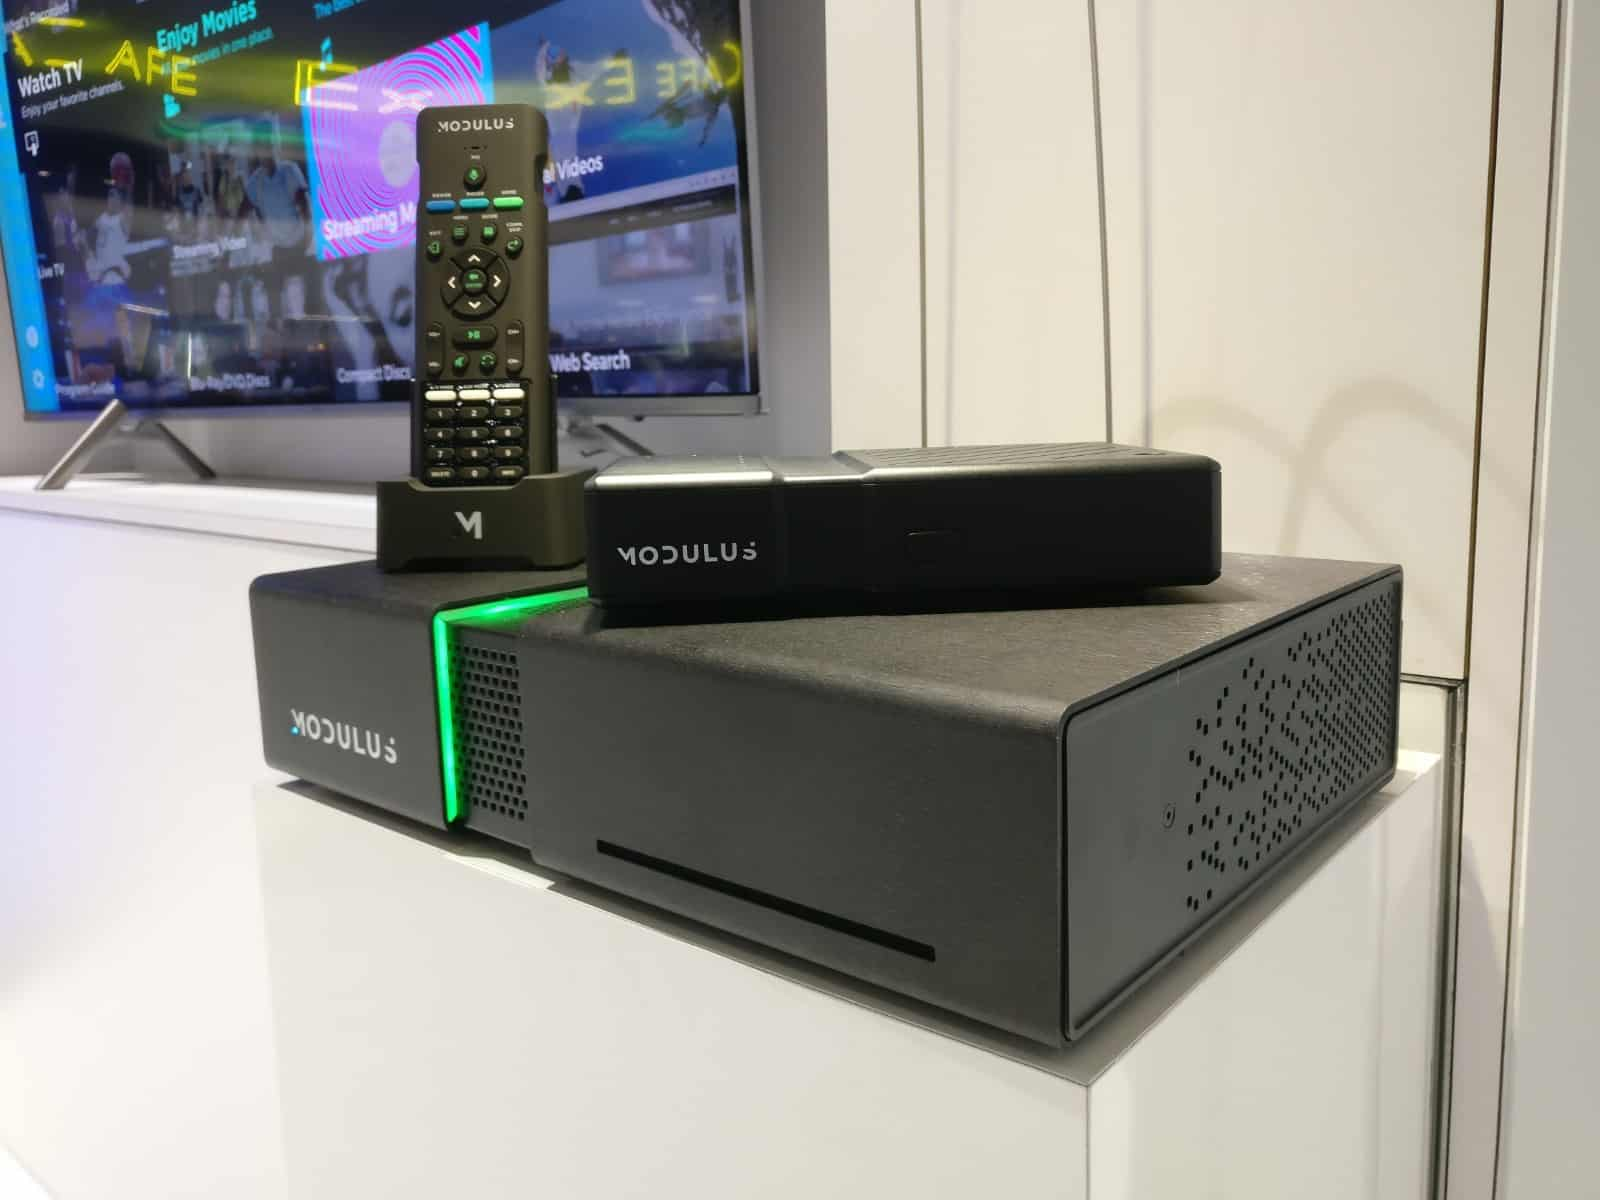 Modulus Media Systems M1 device and remote at CEDIA